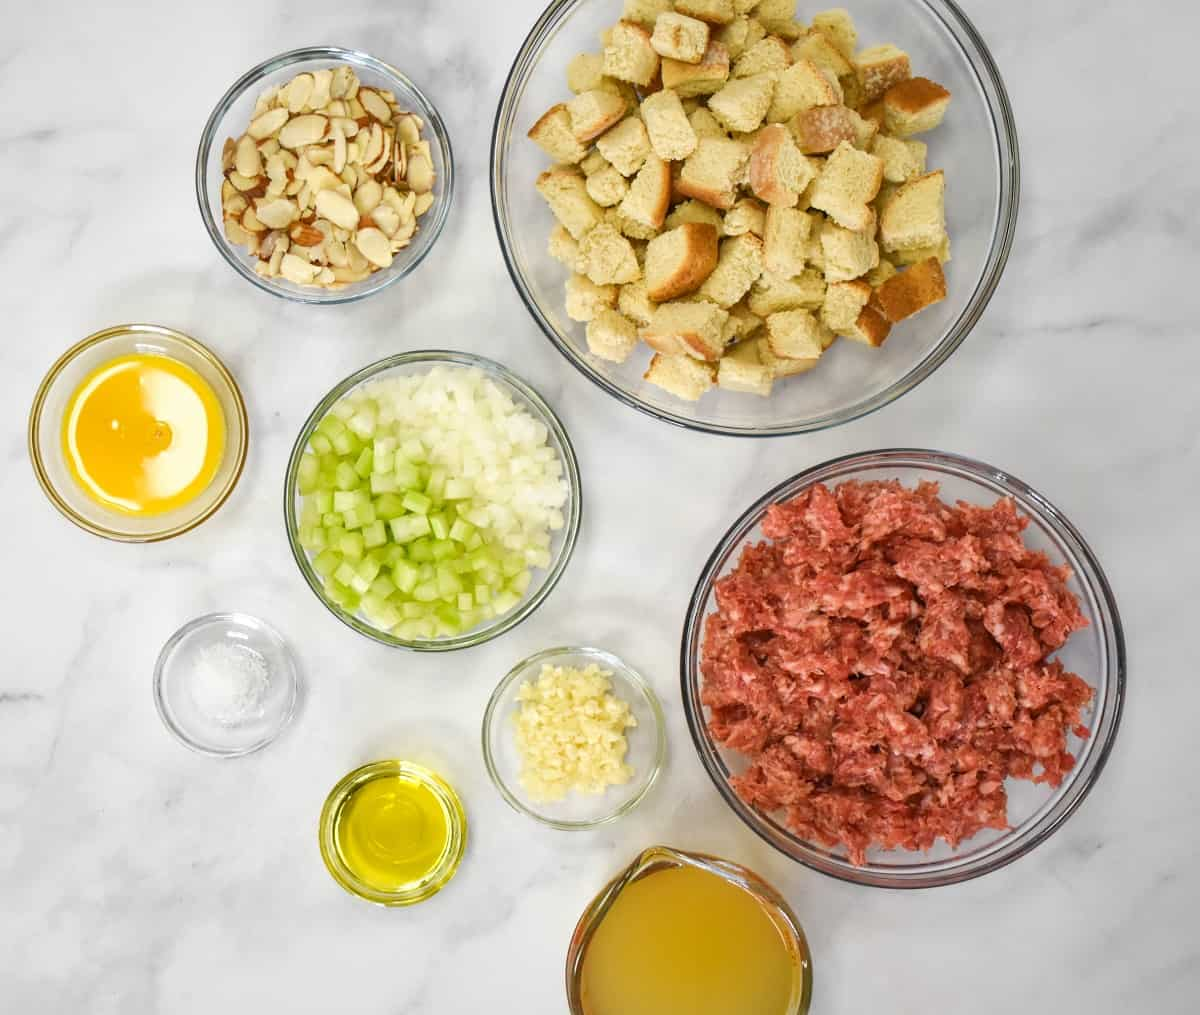 The ingredients for the sausage stuffing, prepped and arranged in glass bowls on a white table.